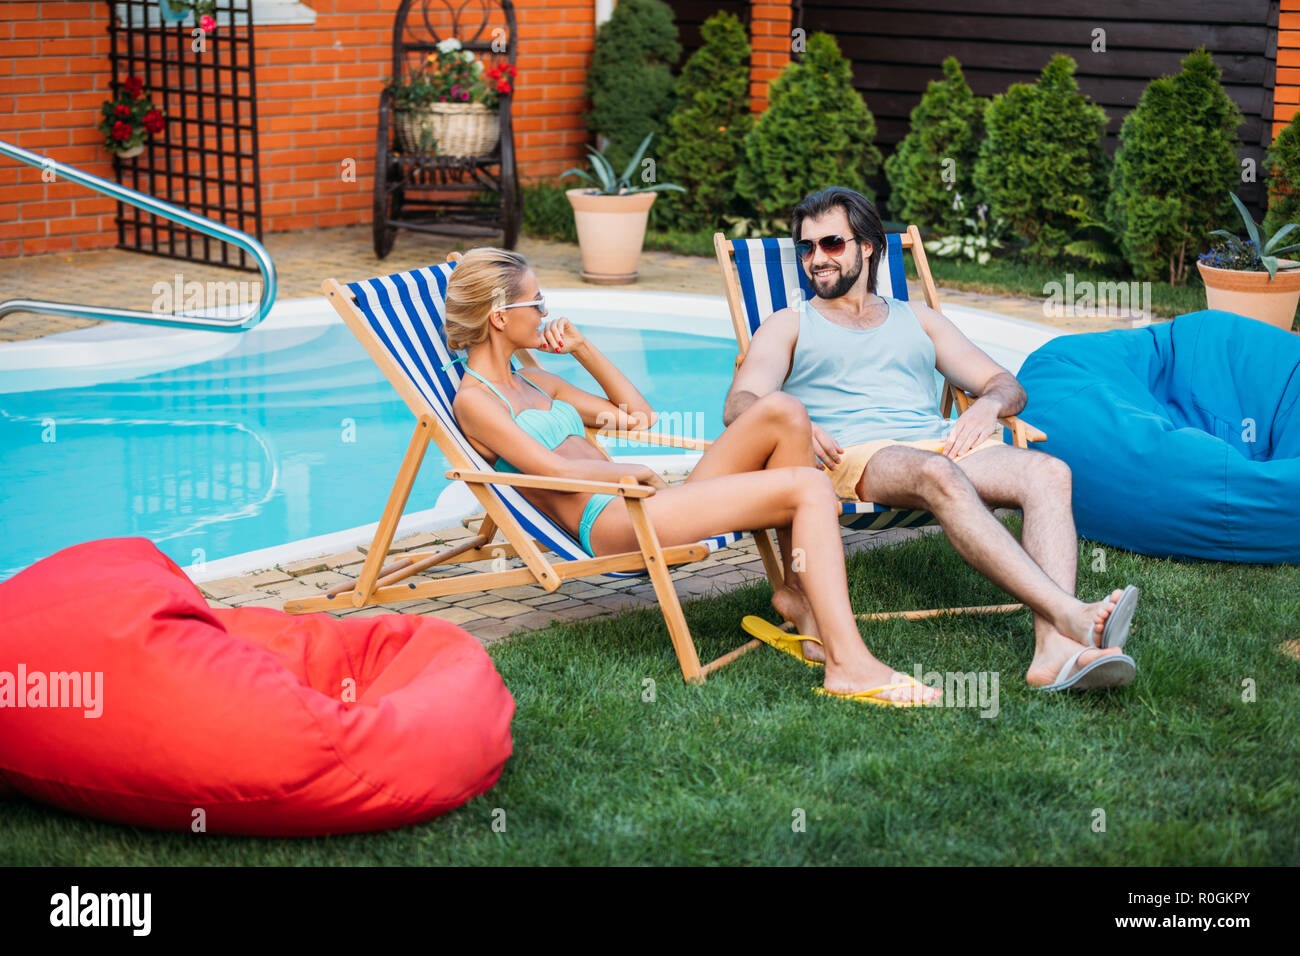 smiling couple on beach chairs spending time near swimming pool on backyard on summer day - Stock Image